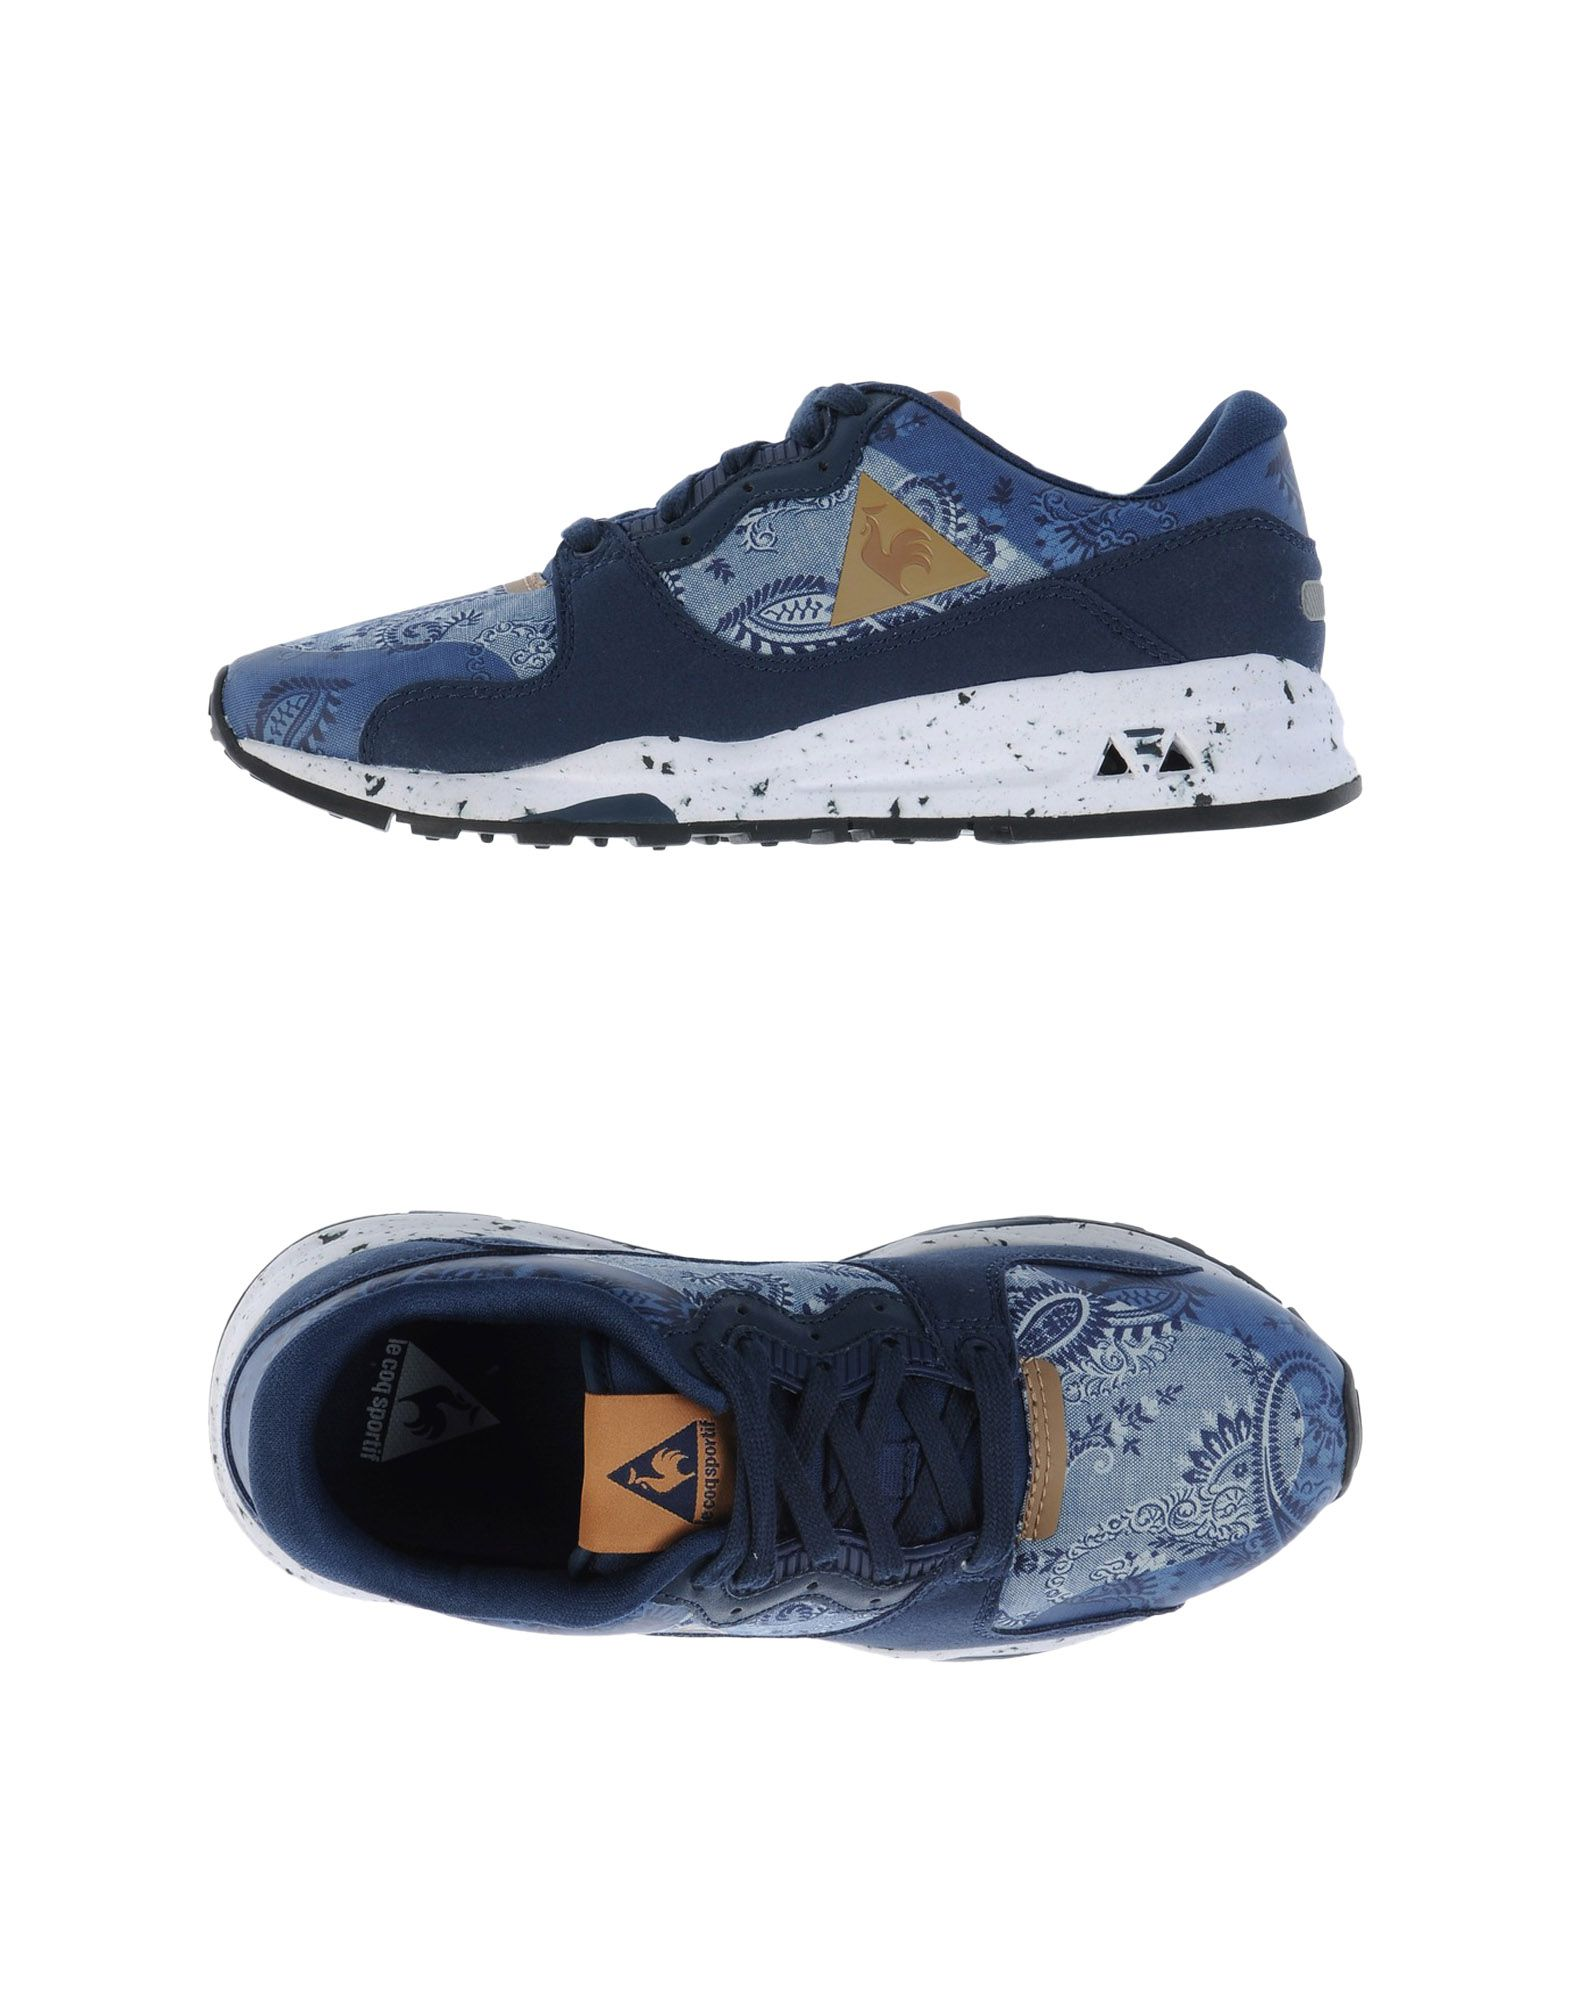 e3779f600076 Le Coq Sportif Lcs R 1400 - Sneakers - Women Le Coq Sportif Sneakers online  on YOOX United States - 44810843AB